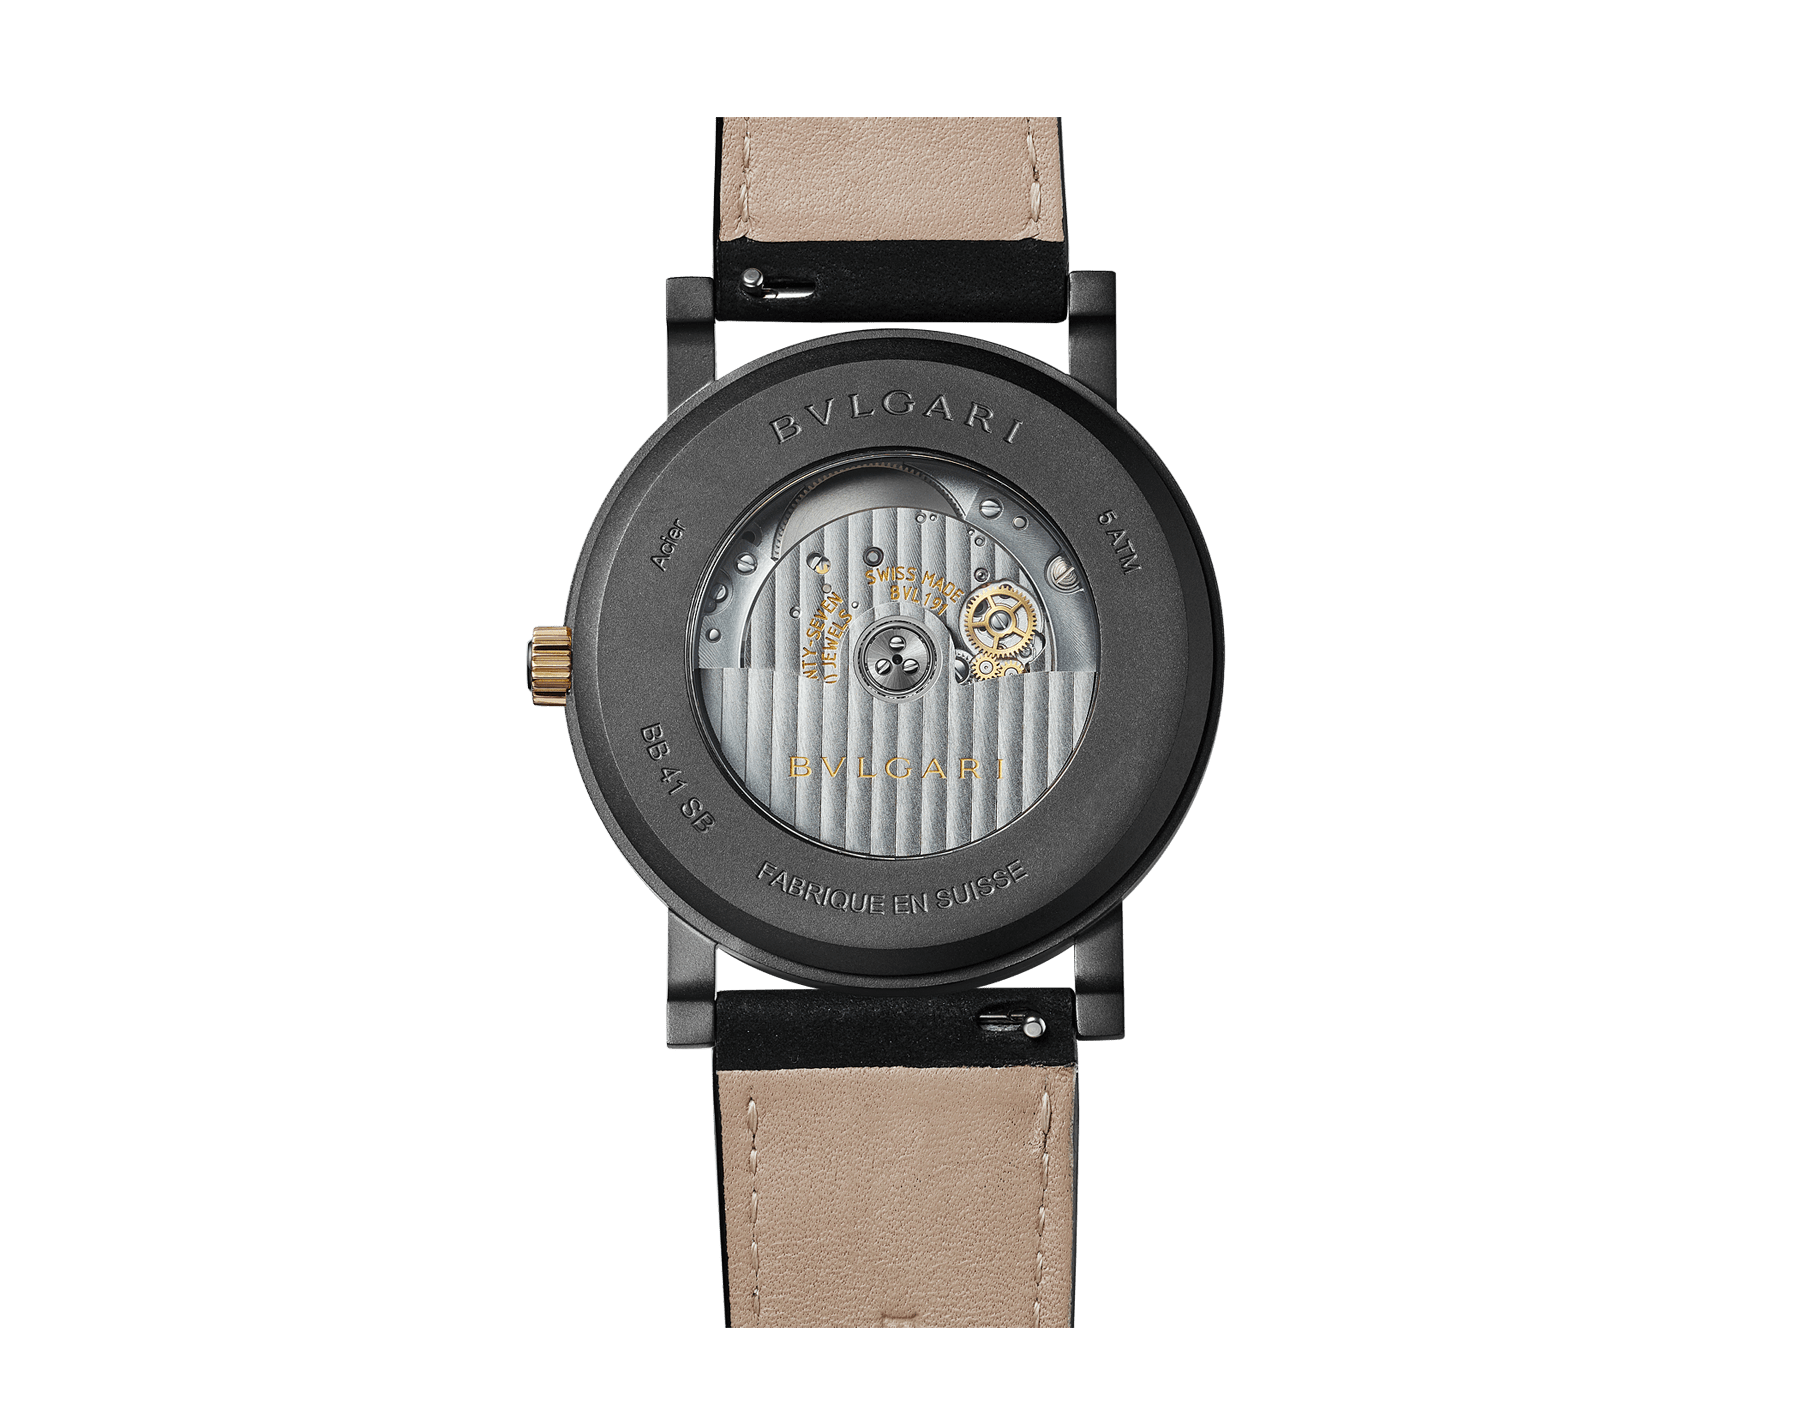 BVLGARI BVLGARI Solotempo watch with mechanical manufacture movement, automatic winding and date, stainless steel case treated with black Diamond Like Carbon and bezel engraved with double logo, black dial and black rubber bracelet 102929 image 3